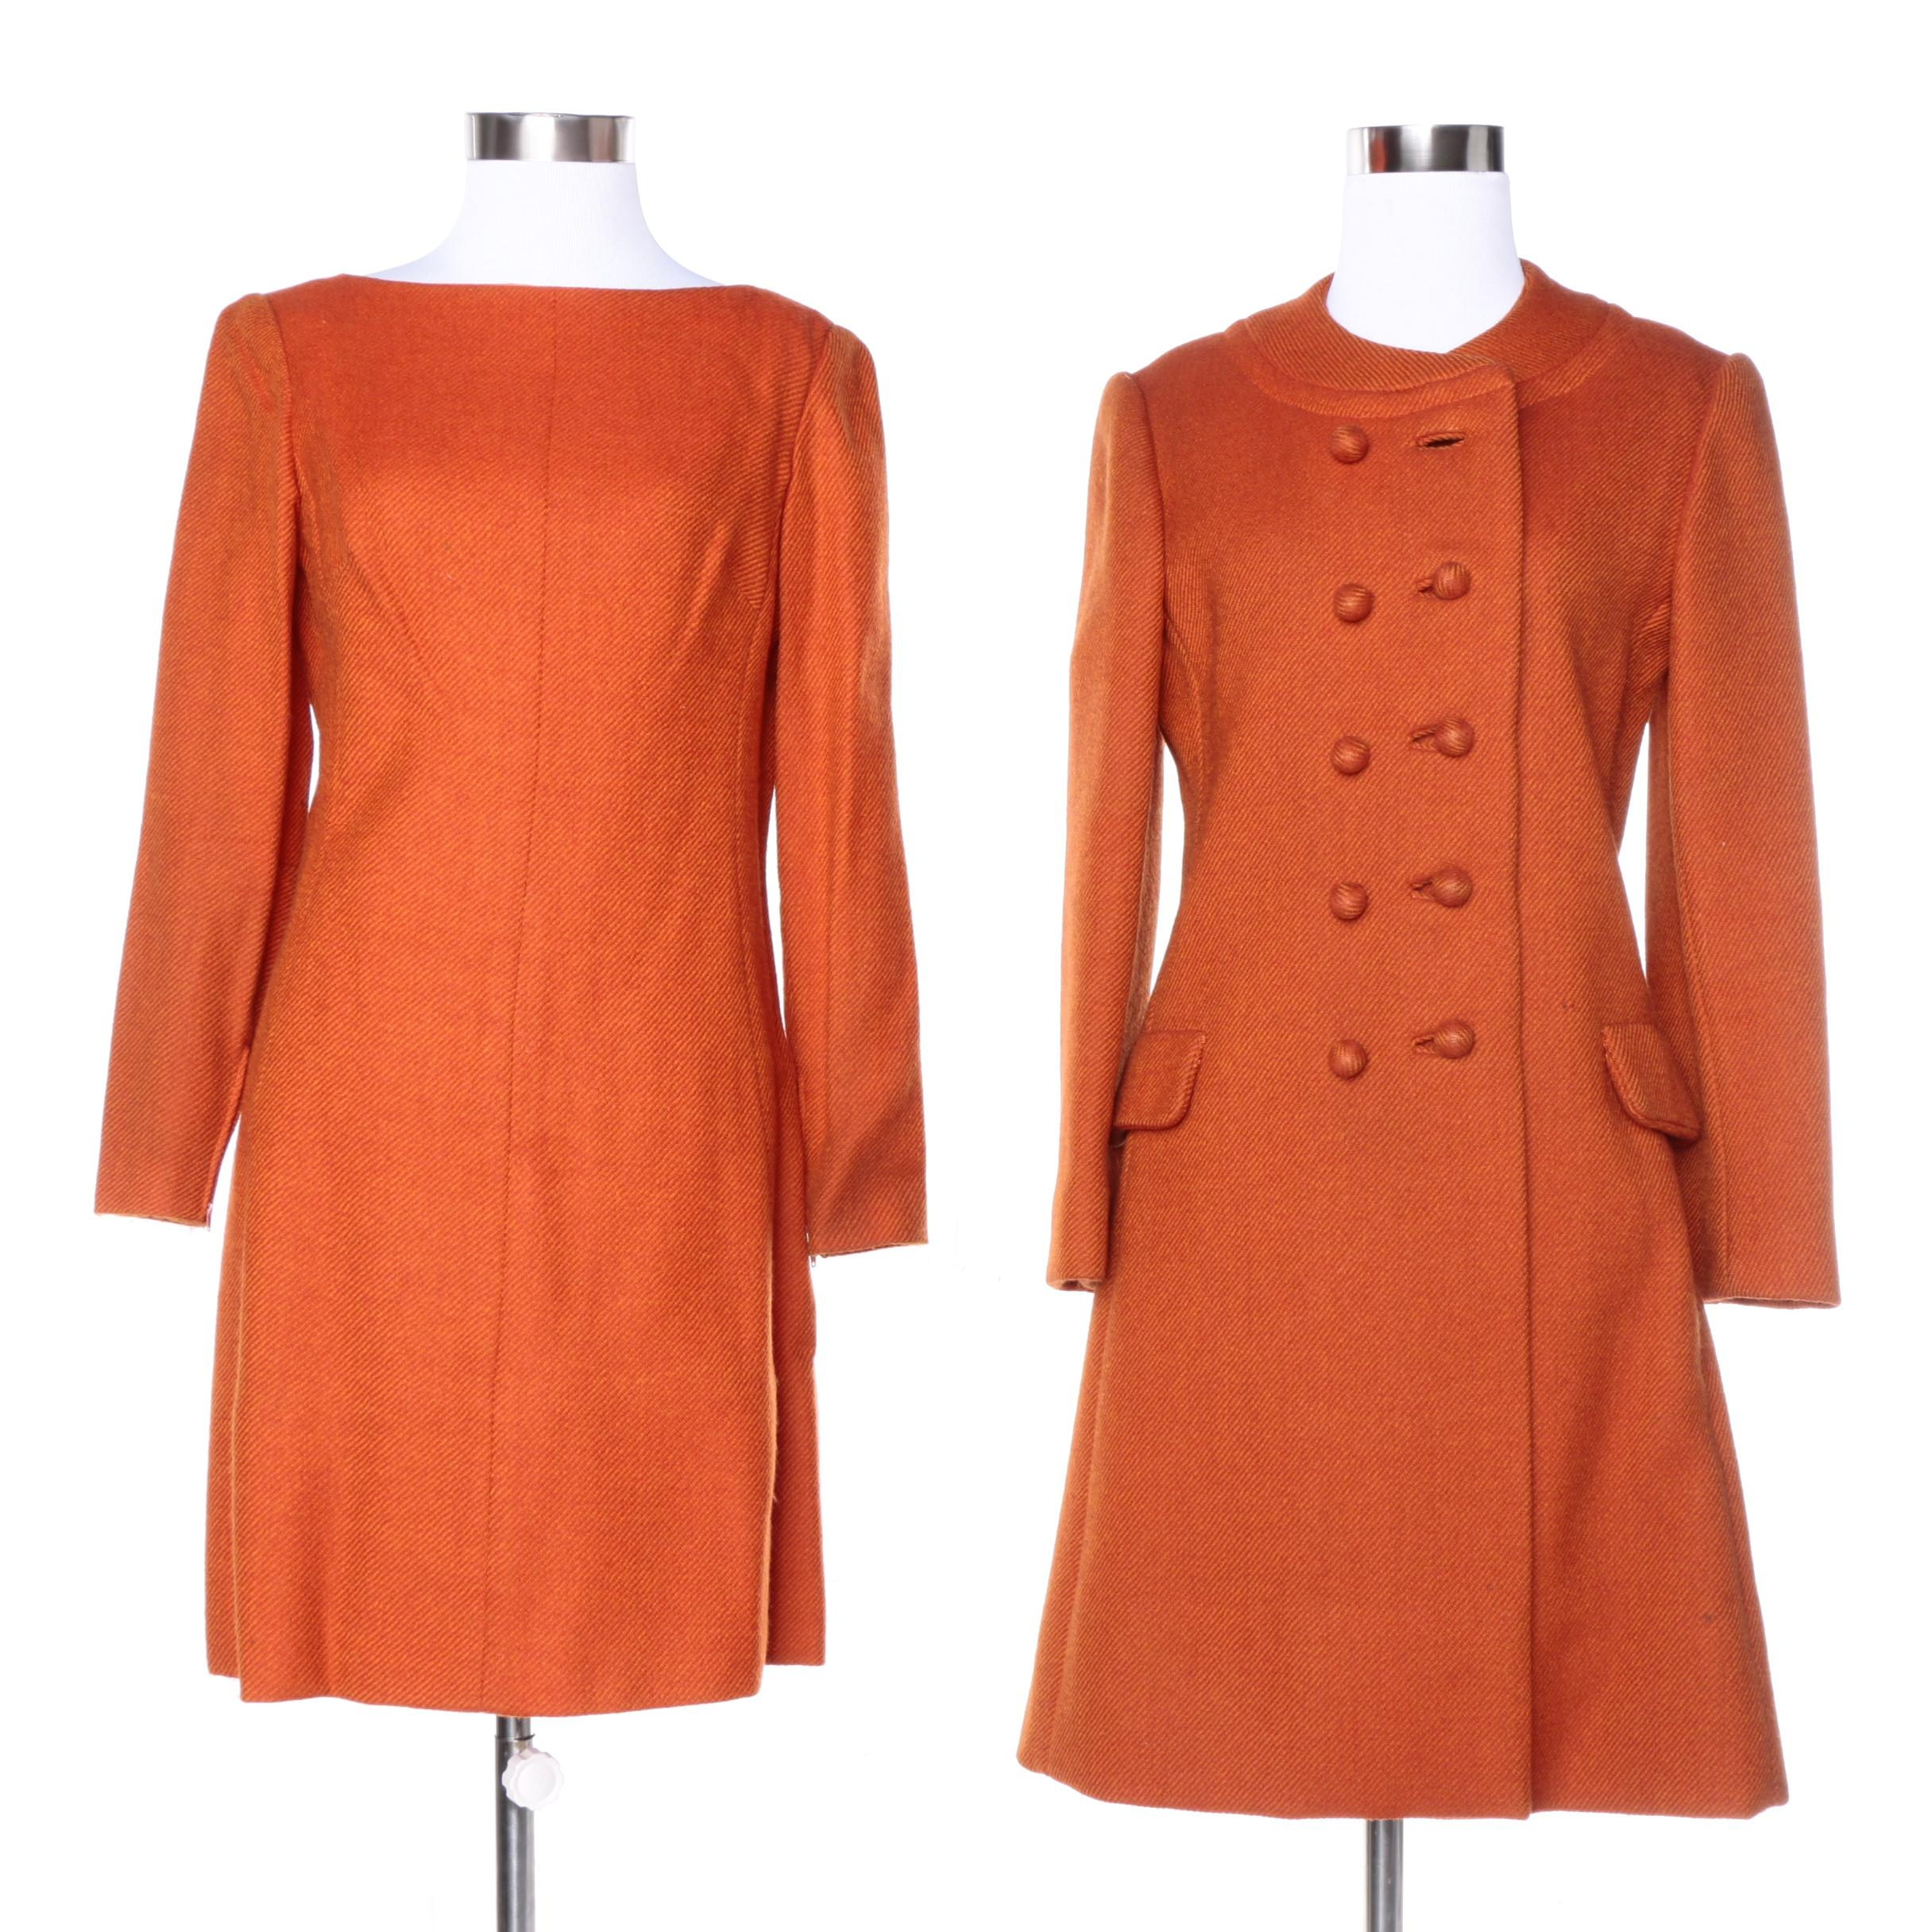 Vintage Mam'selle by Betty Carol Wool Dress and Coat